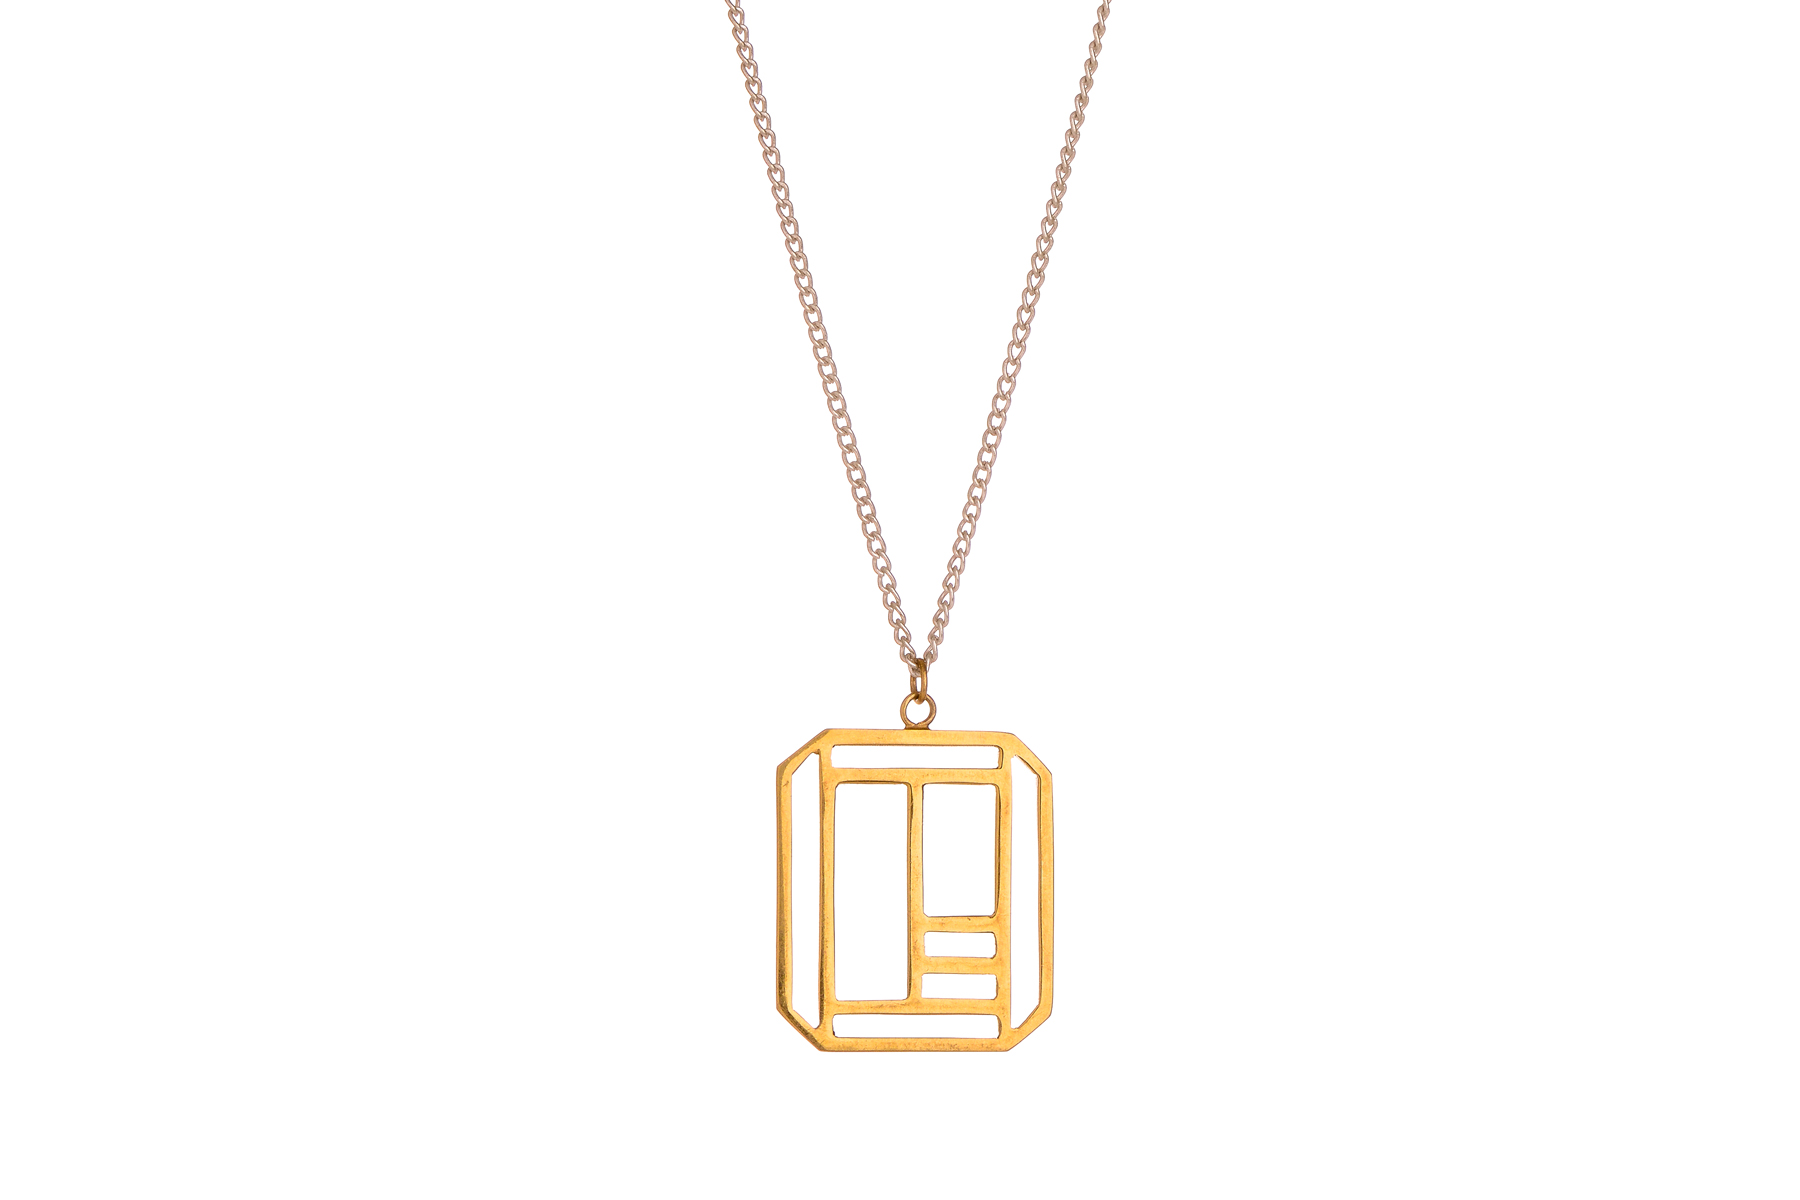 Octahedron Necklace – long